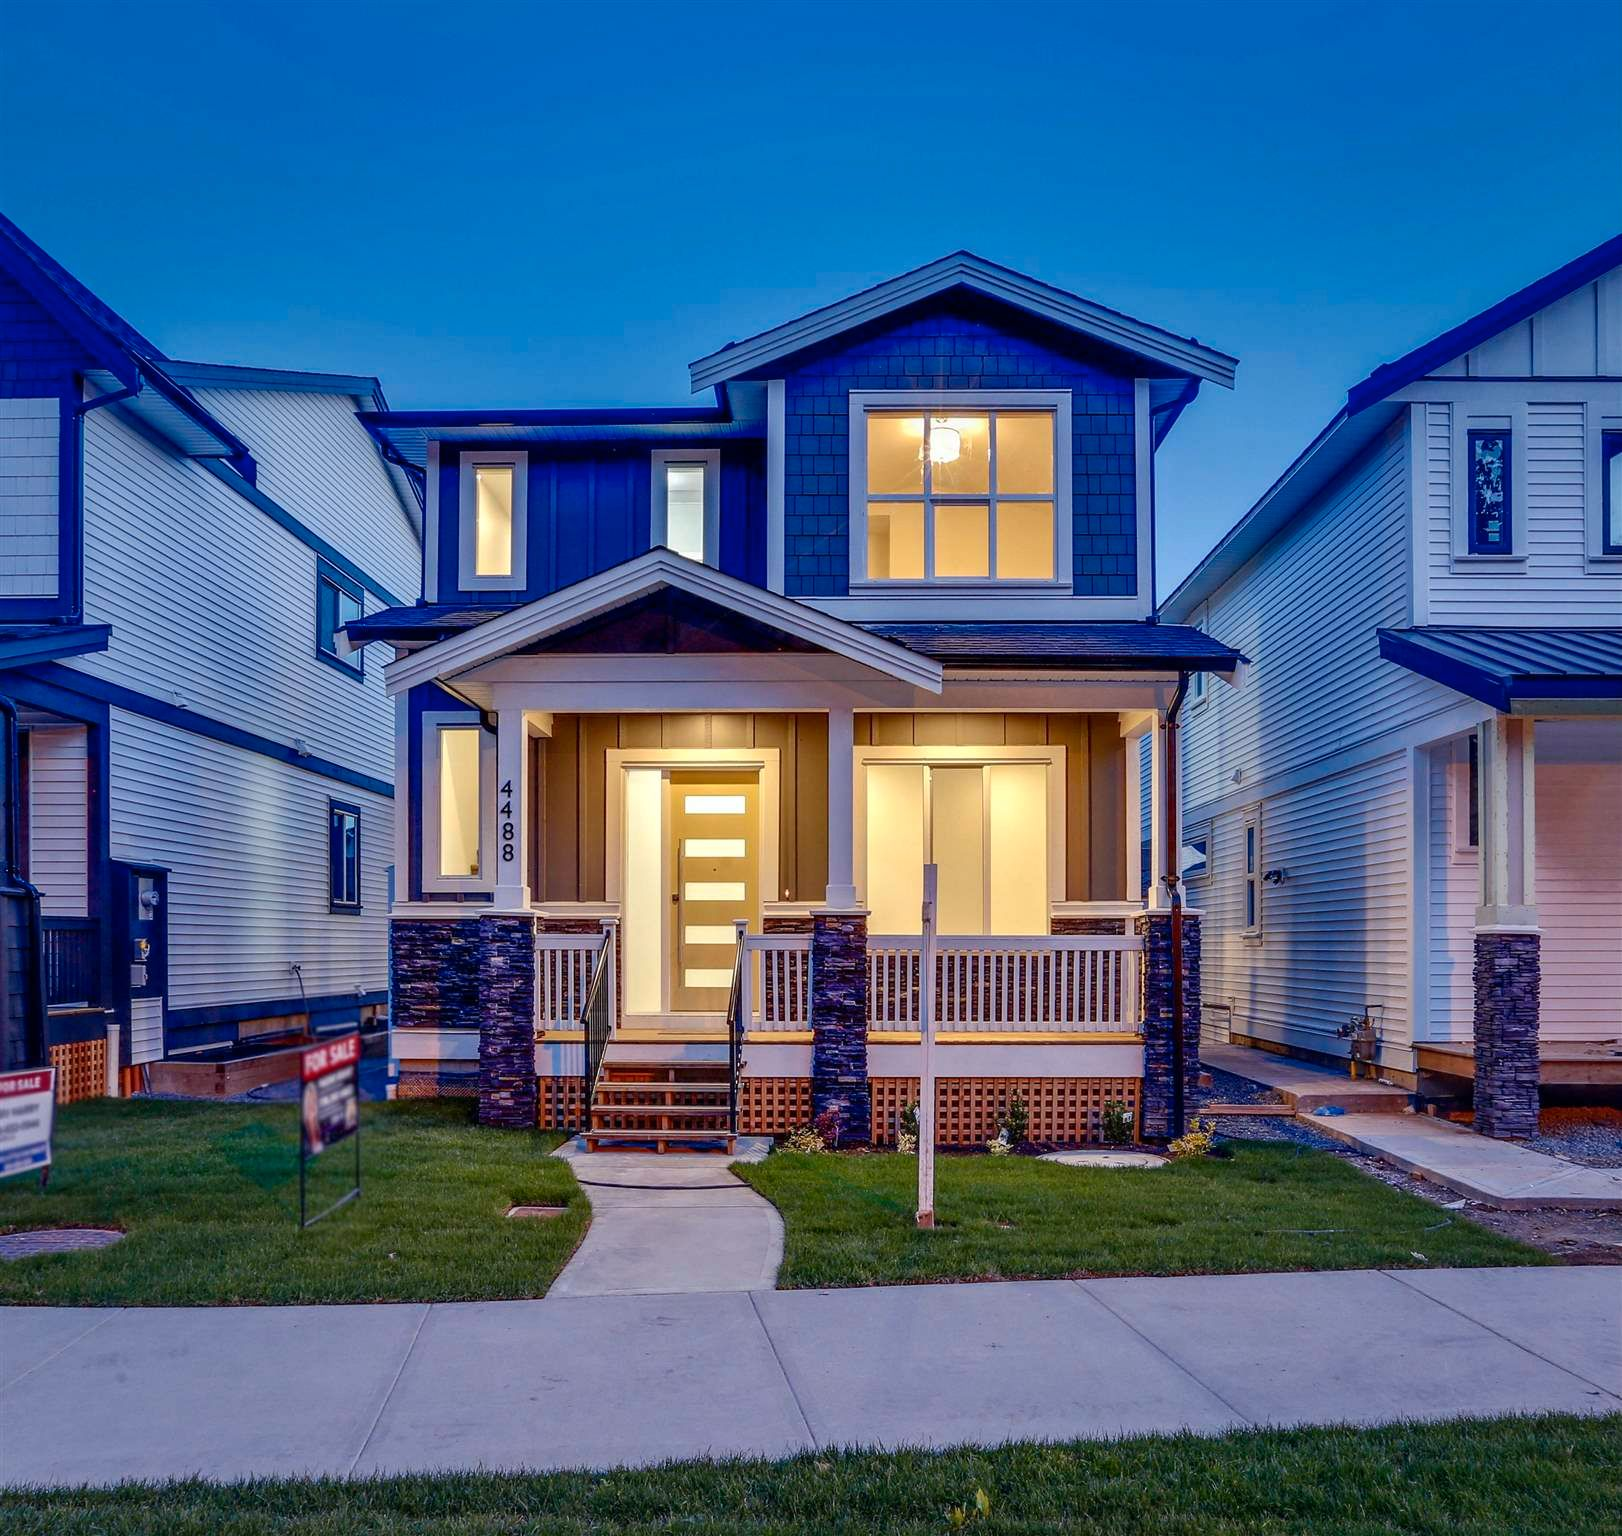 """Main Photo: 4488 STEPHEN LEACOCK Drive in Abbotsford: Abbotsford East House for sale in """"Auguston"""" : MLS®# R2589245"""